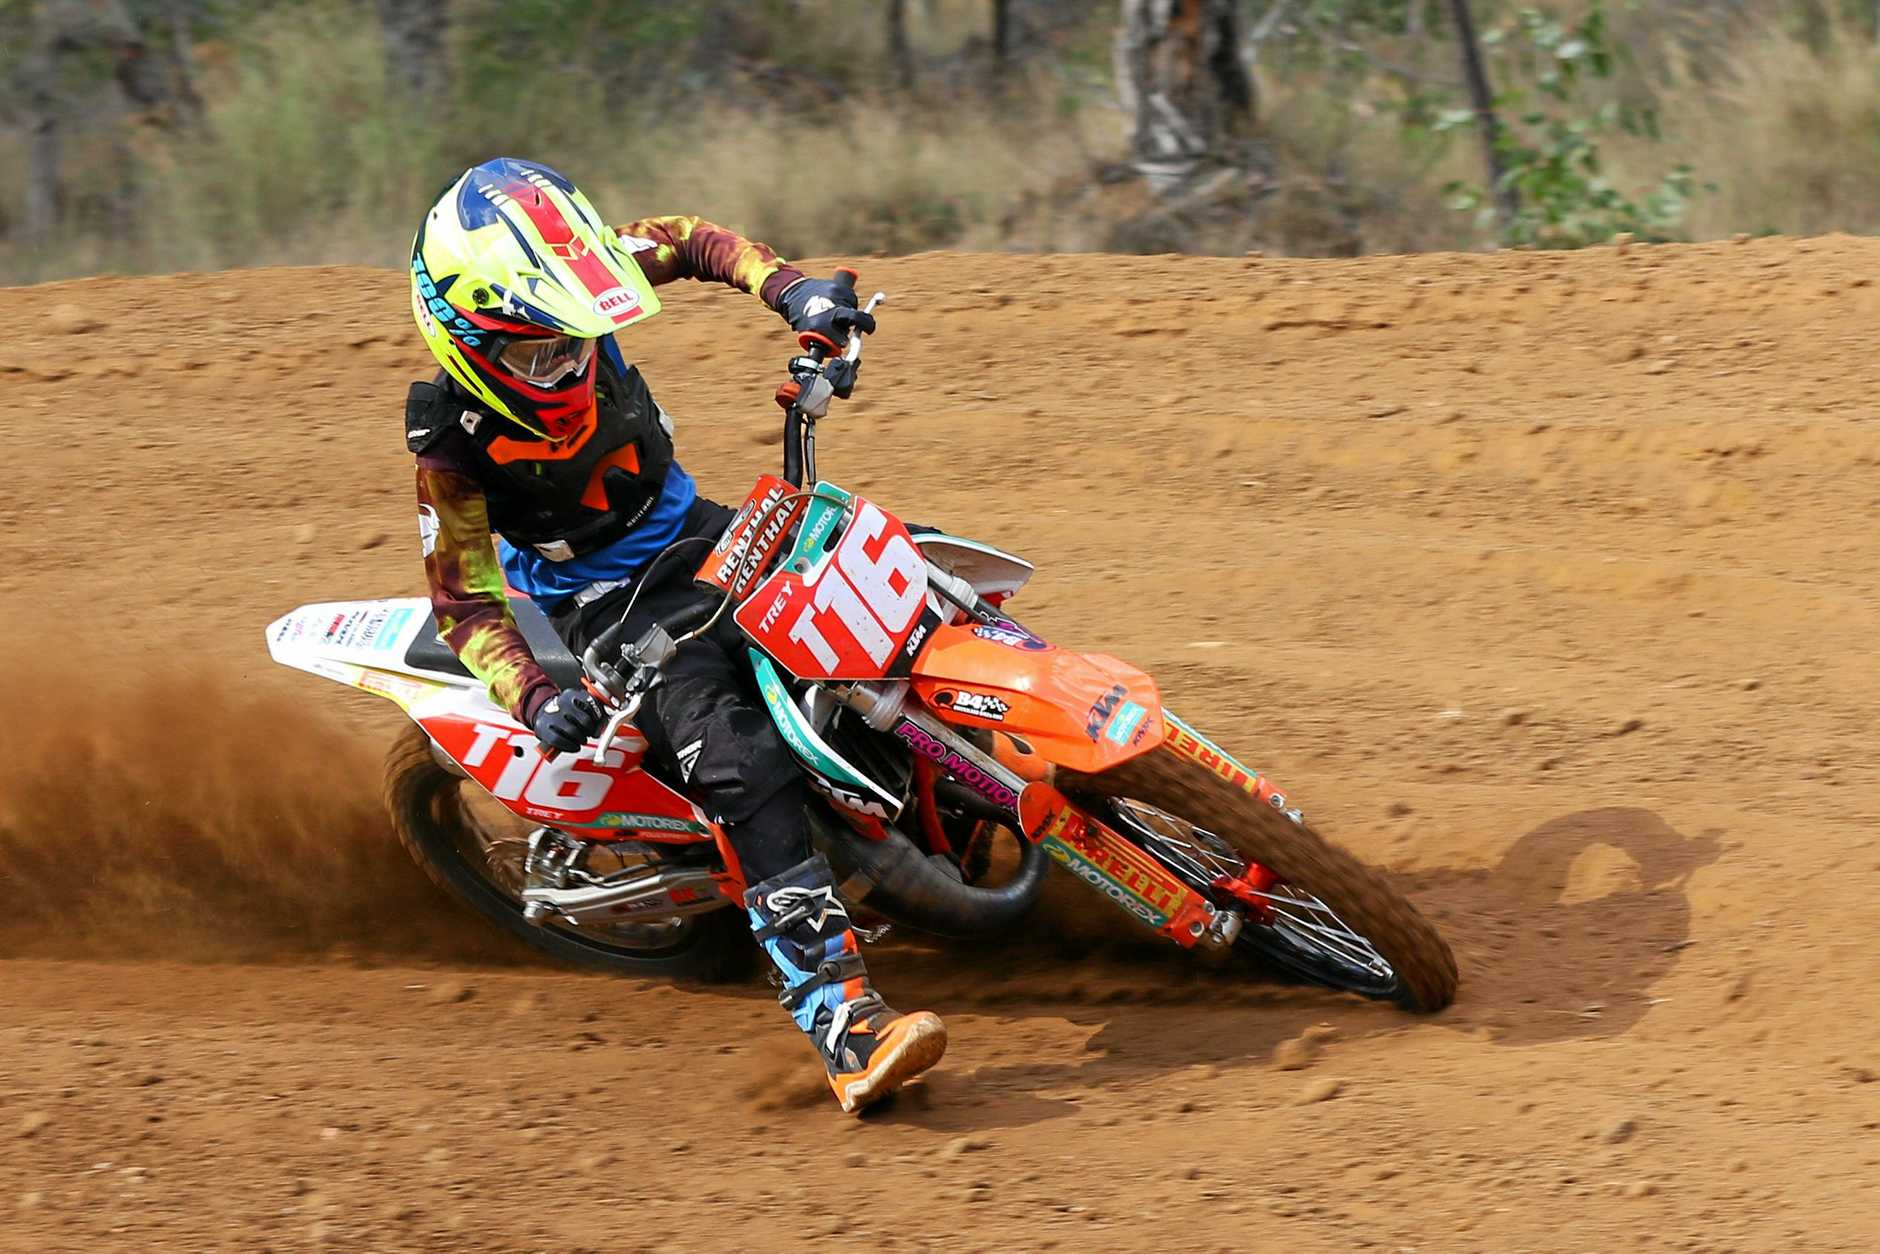 Warwick rider Trey Williams shows his style in motocross this season.